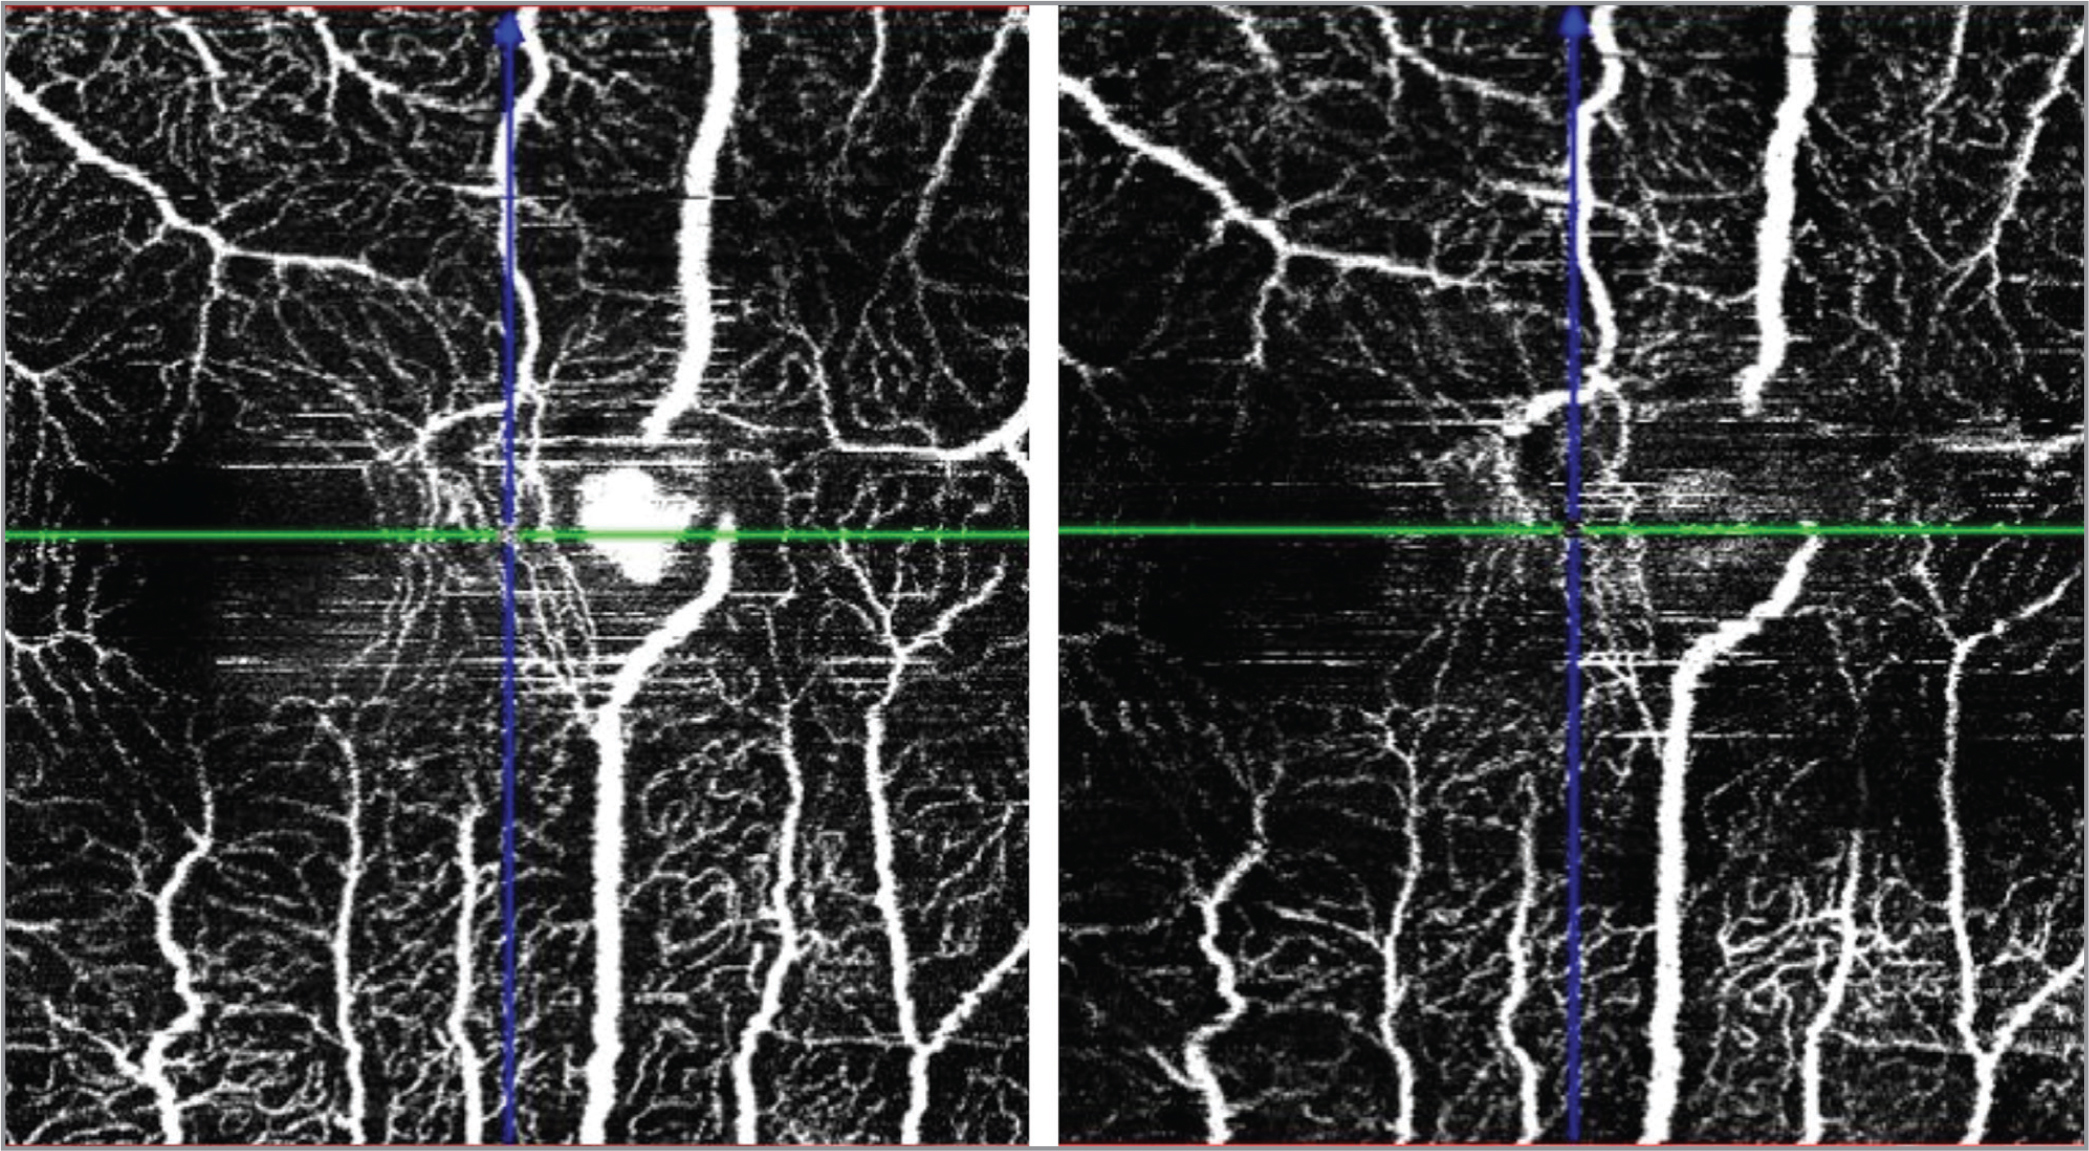 (Left) Pretreatment optical coherence tomography angiography. Superficial vascular plexus (SVP) showing the well-defined perifoveal exudative vascular anomalous complex (PEVAC)-like. (Right) Post-treatment disappearance of the PEVAC-like lesion in the SVP, suggestive of reduced or absent flow.